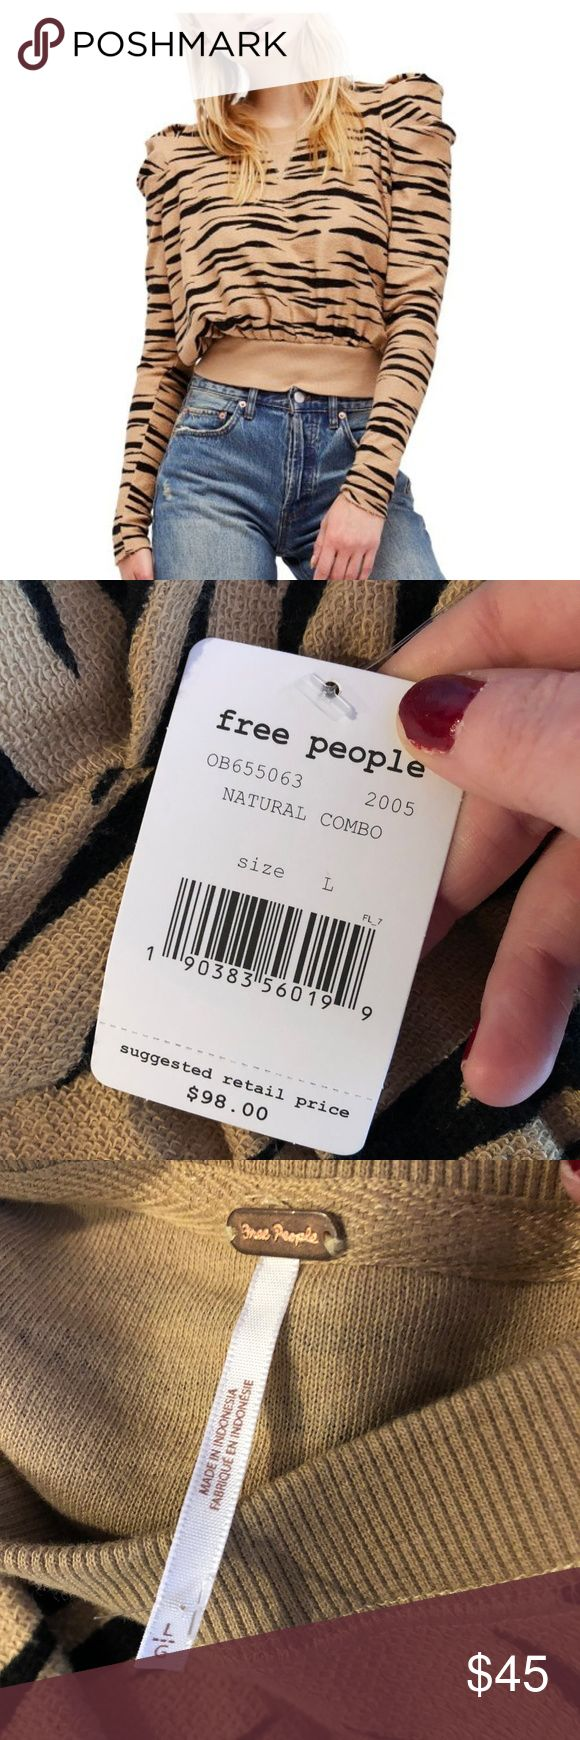 """Free People ZaZa Zebra pullover sweatshirt Free People Women's ZaZa Zebra women's puffy shoulder pullover sweatshirt with zebra animal print. Size large. Retails for $98. Tags are attached but some pulls to fabric.  armpit to armpit-24"""" overall length-25""""  I211 Free People Tops Sweatshirts & Hoodies"""